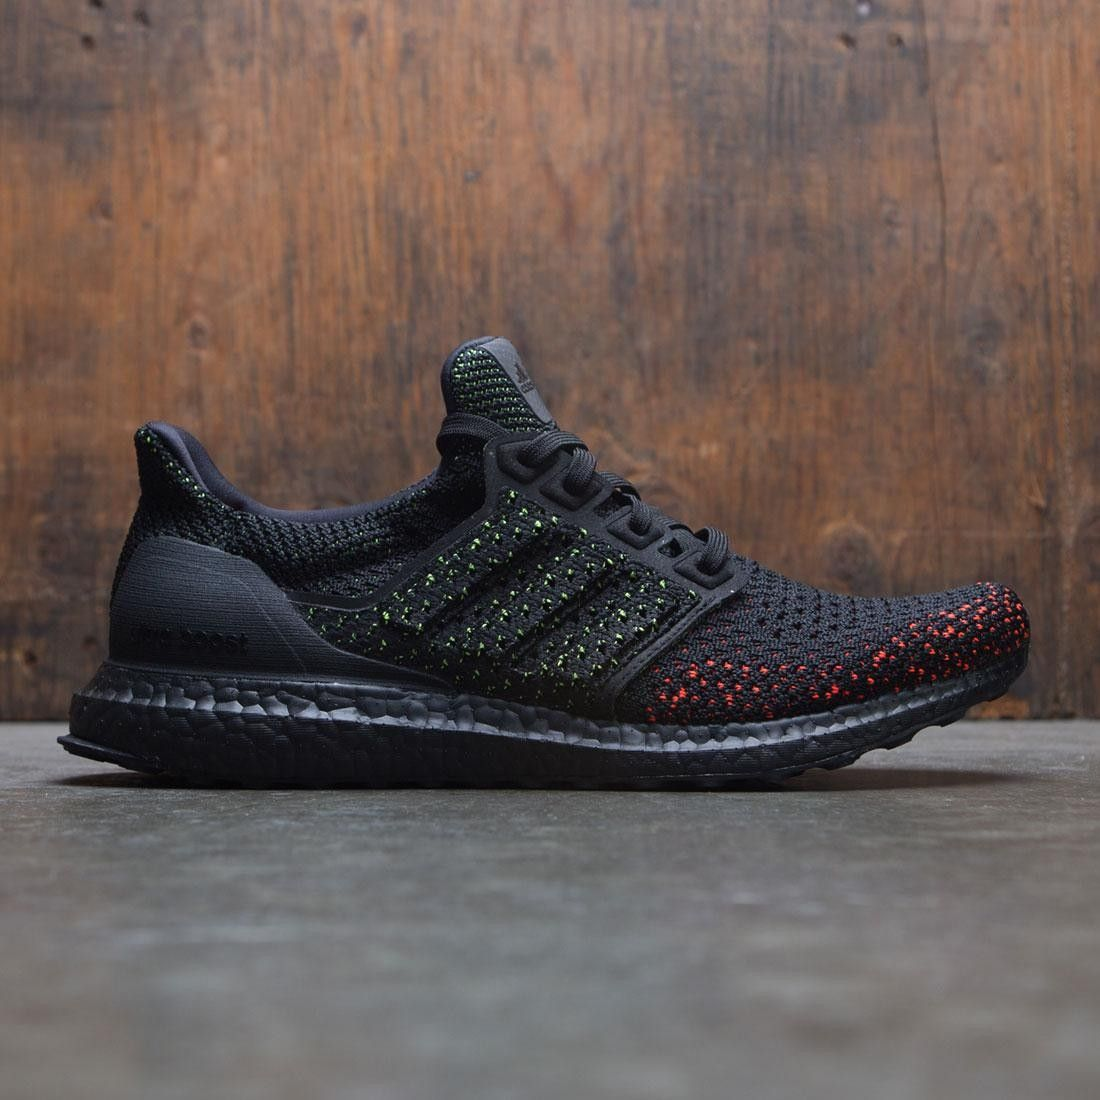 Adidas Men UltraBOOST CLIMA (black   core black   solar red) in 2019 ... dab2c7a03